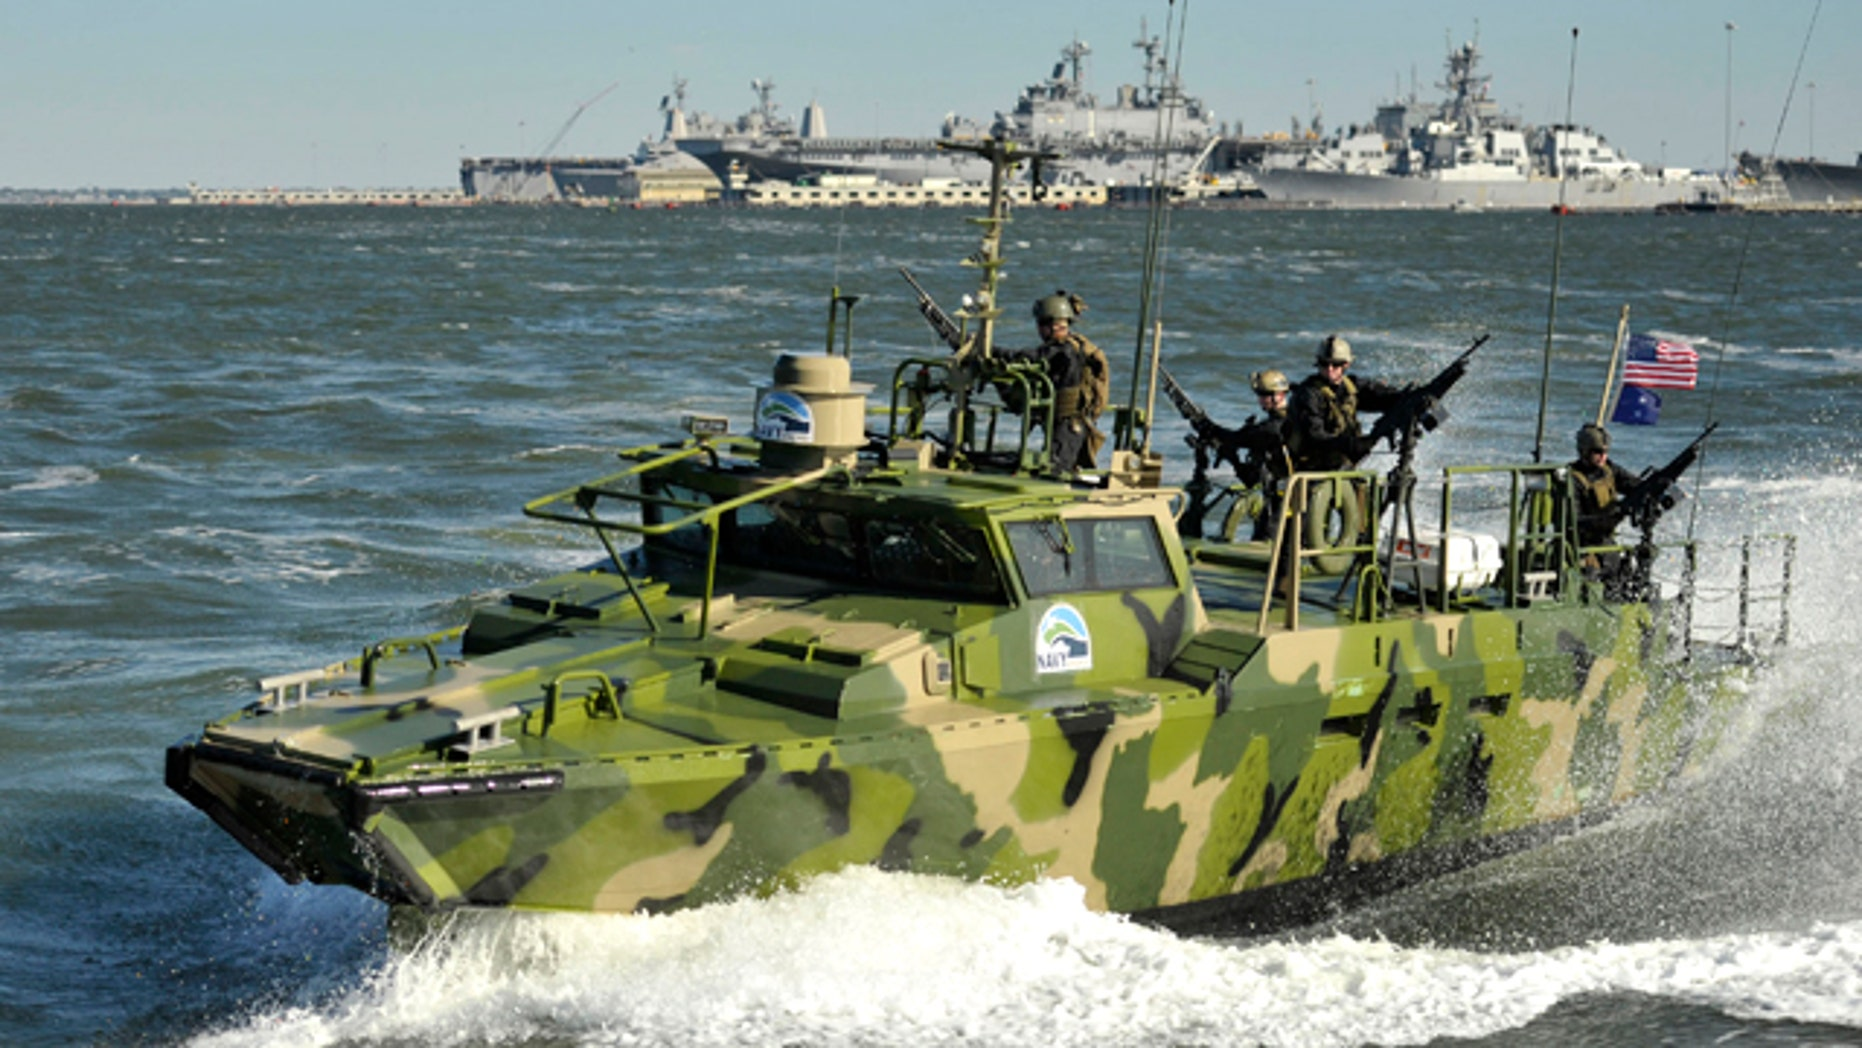 Sailors assigned to Riverine Group 1 conduct maneuvers aboard Riverine Command Boat (Experimental) (RCB-X) at Naval Station Norfolk, Va. on Oct. 22, 2010. The RCB-X is powered by an alternative fuel blend that's 50 percent algal and 50 percent NATO F-76 fuel, reducing the total energy consumption on naval ships.